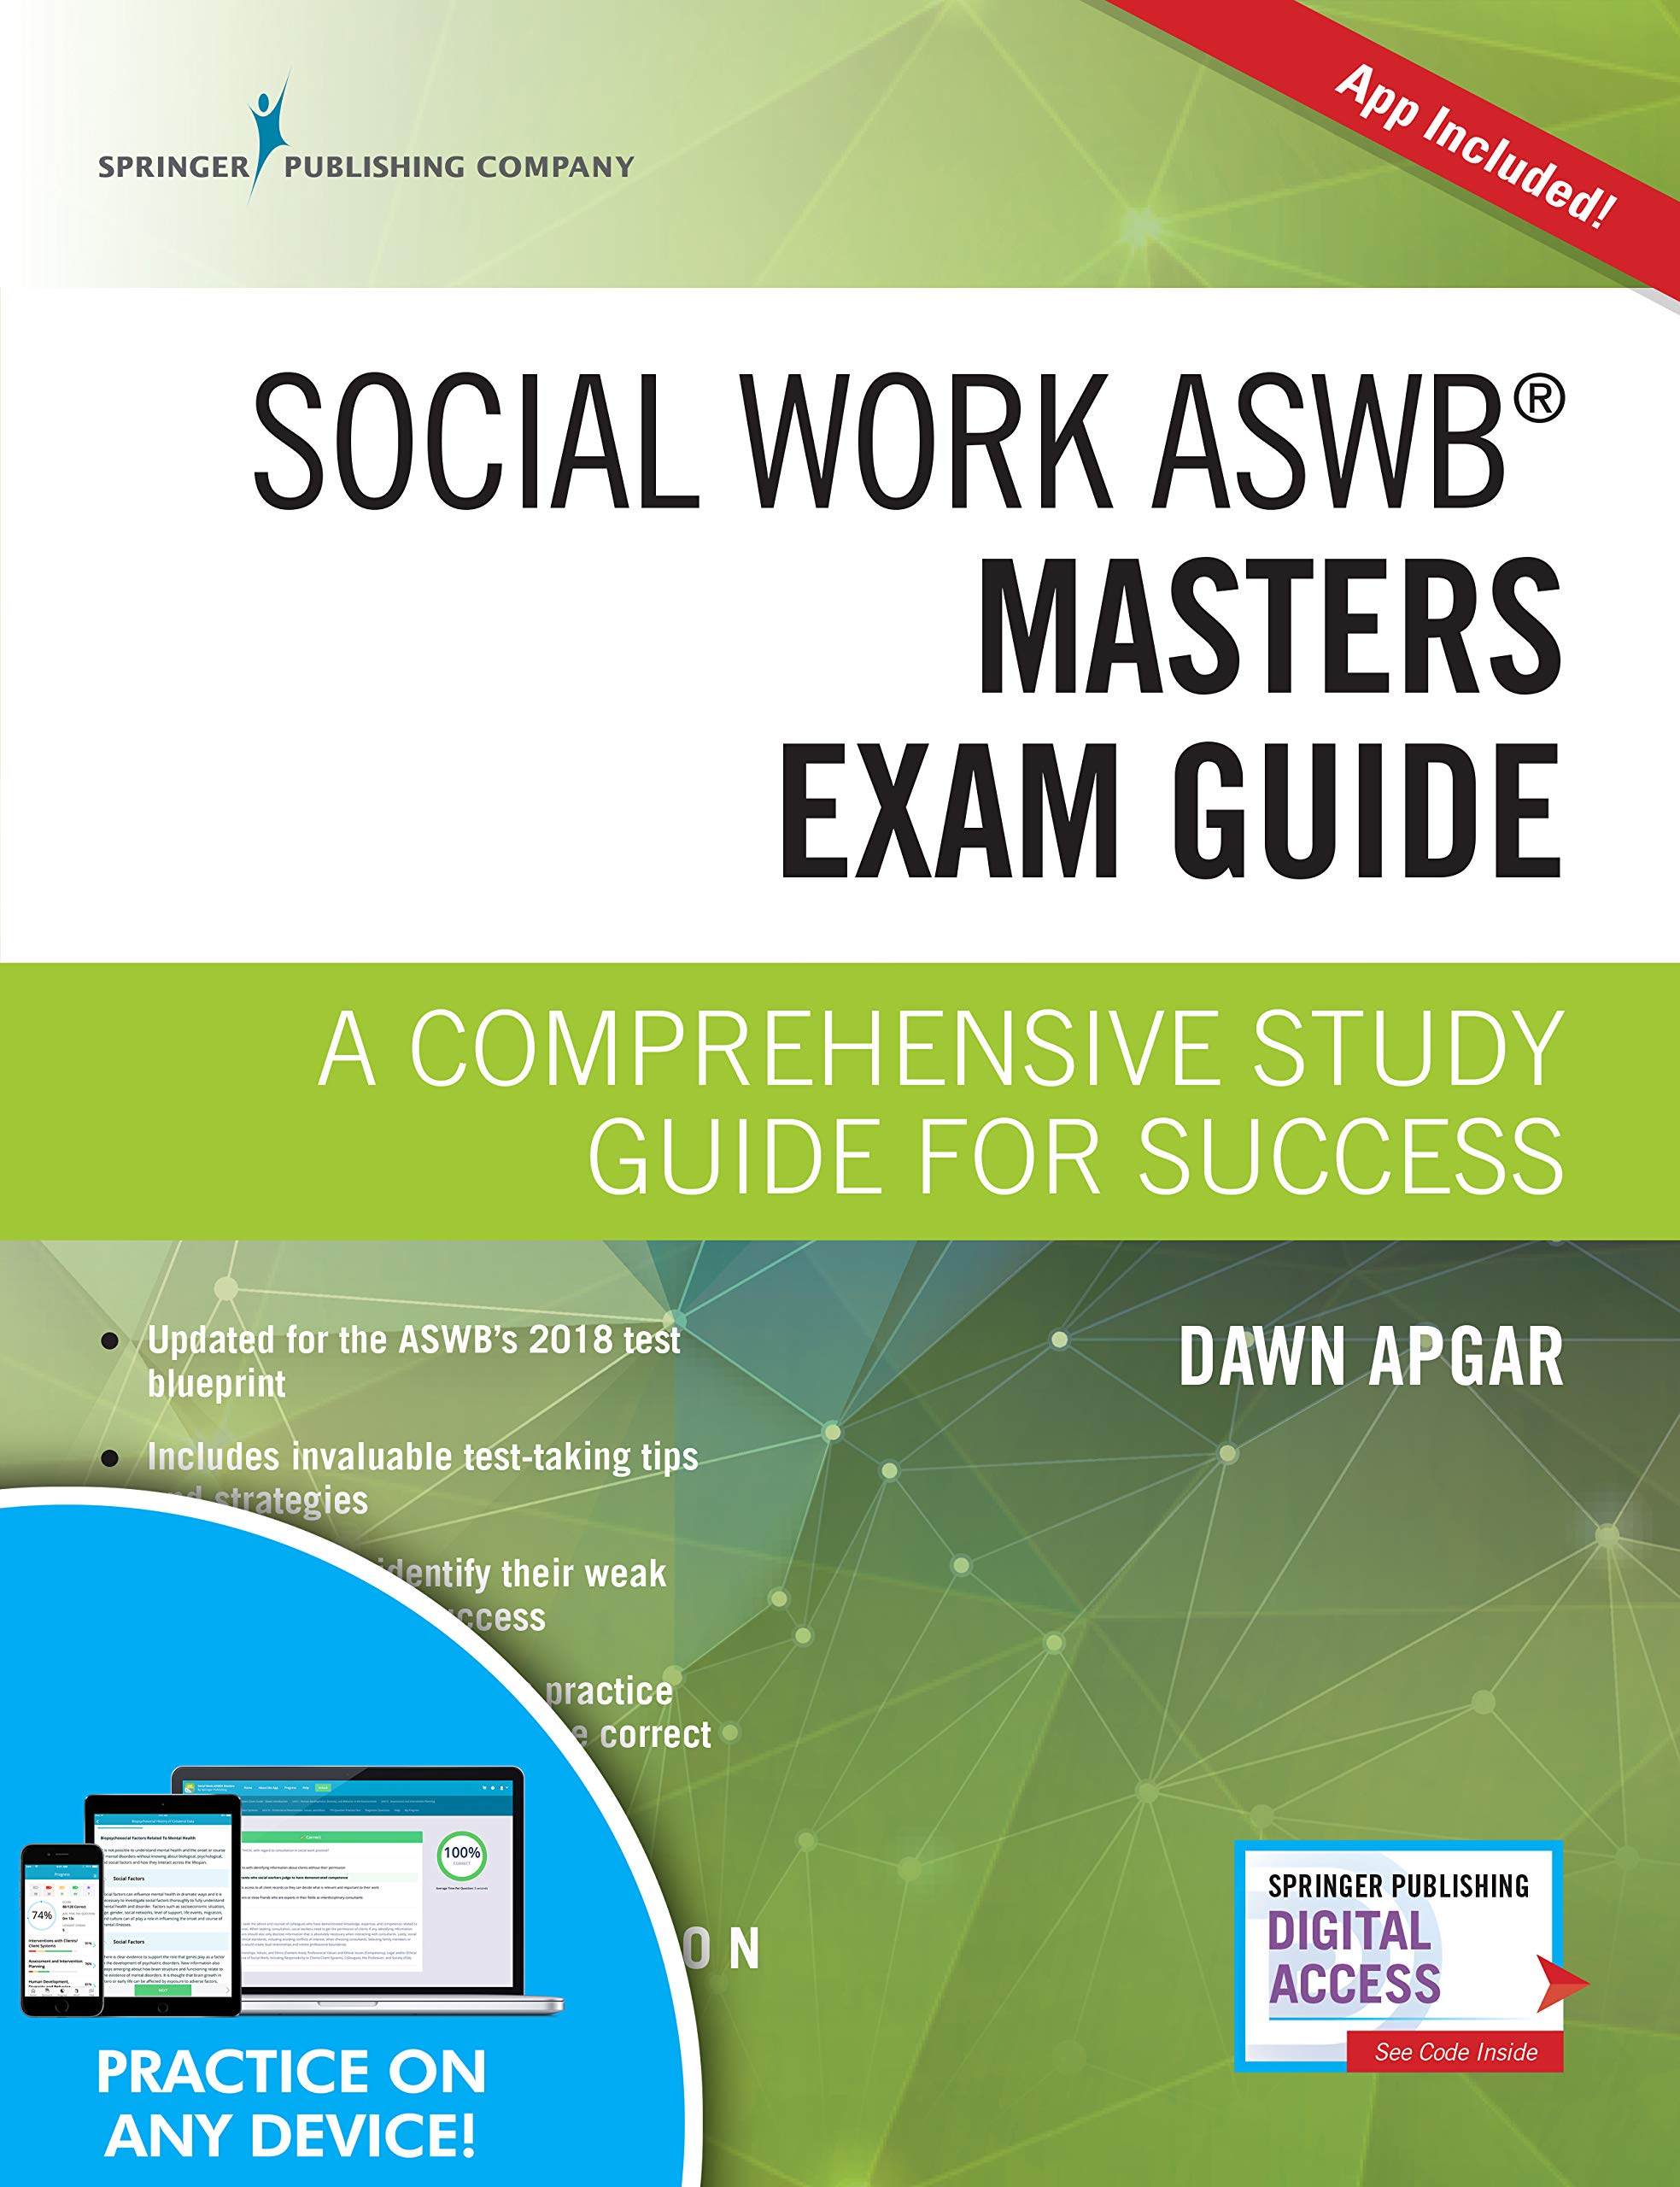 Social Work ASWB Masters Exam Guide, Second Edition: A Comprehensive Study Guide for Success - Book and Free App - Updated ASWB Study Guide Book with a Full ASWB Practice Test by Springer Publishing Company